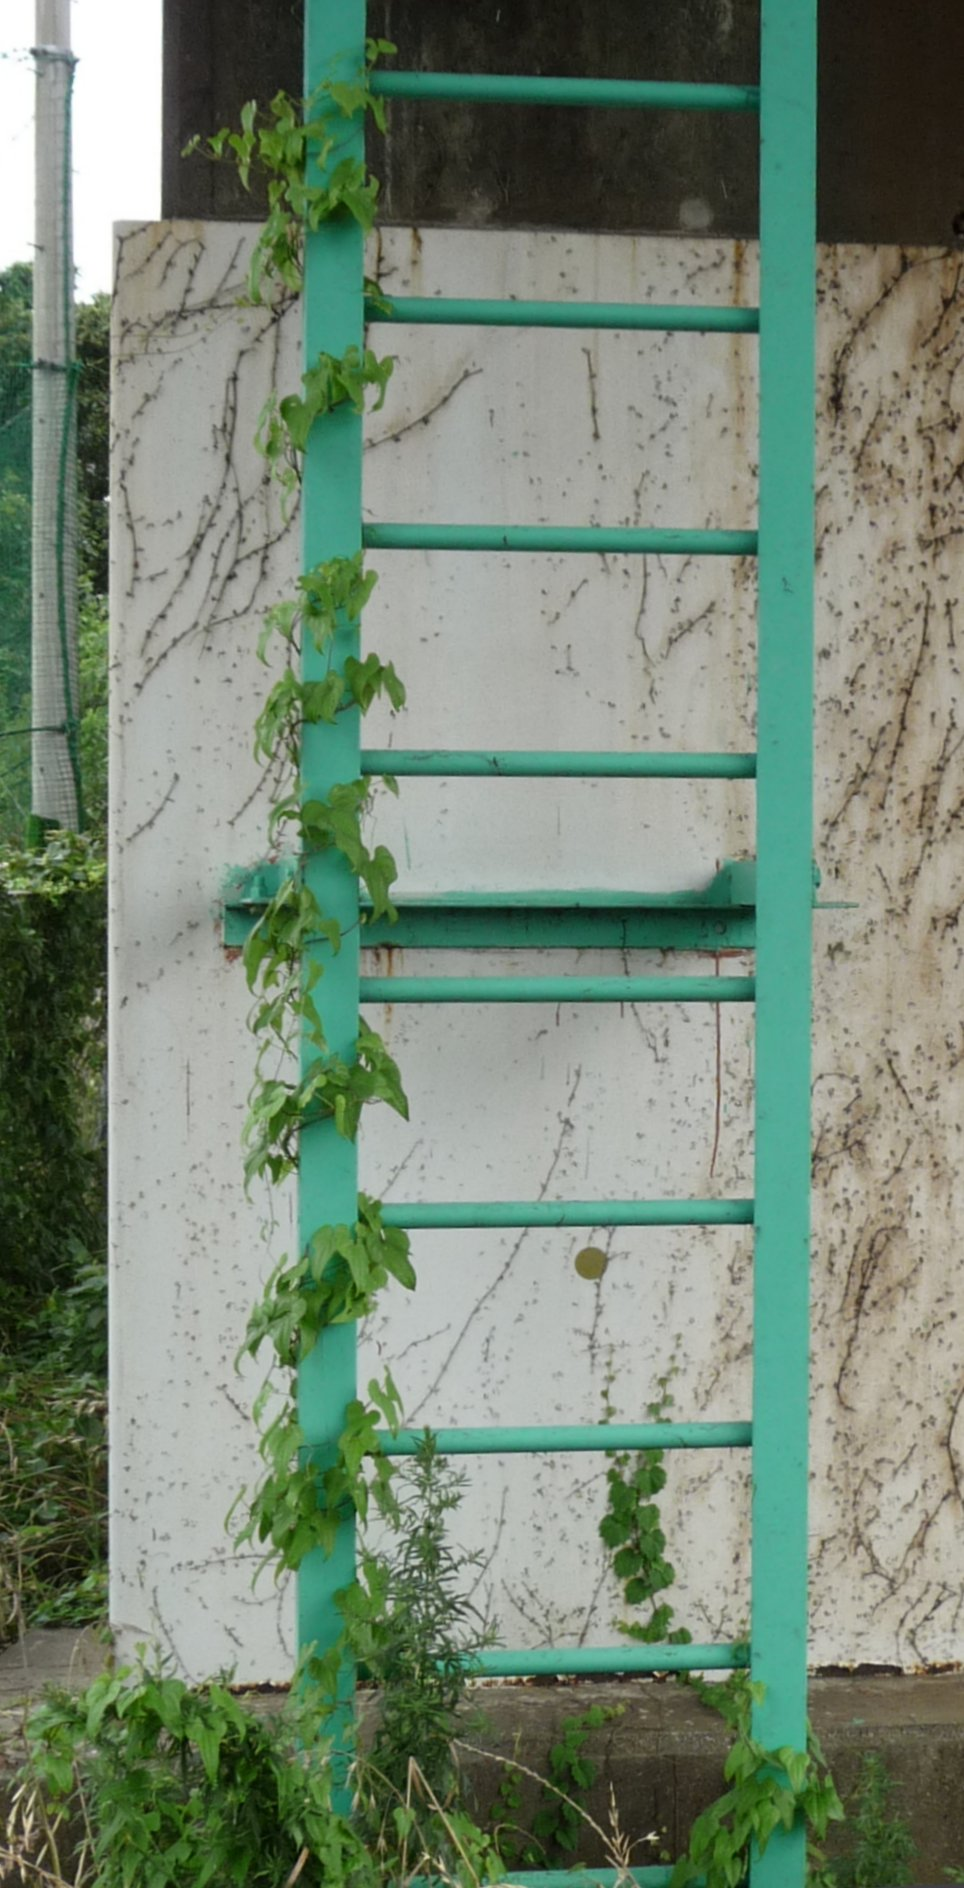 Vine twining around a steel fixed ladder